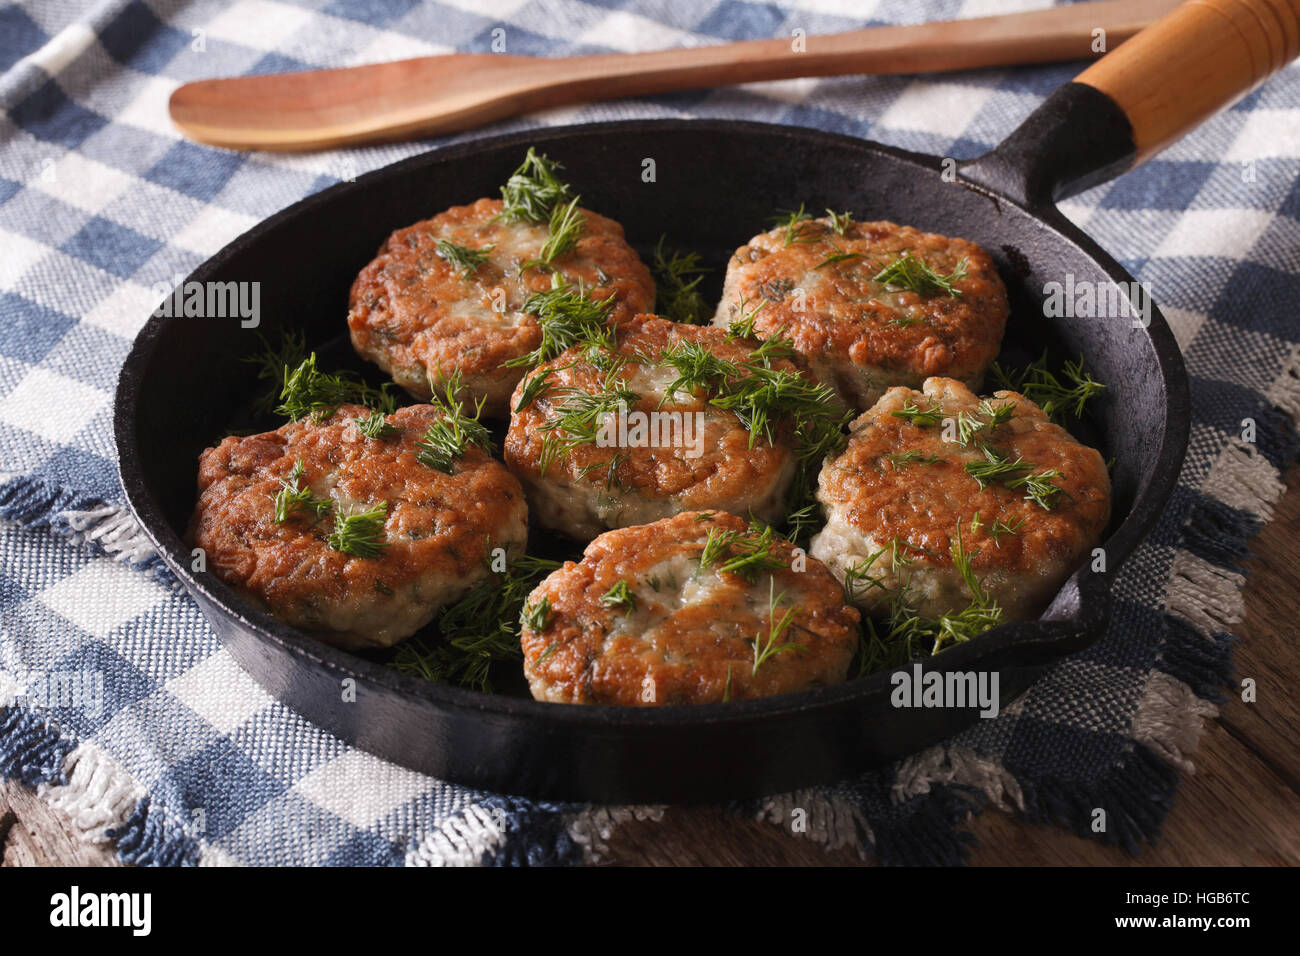 fishcakes with herbs close-up in a pan on the table. Horizontal - Stock Image